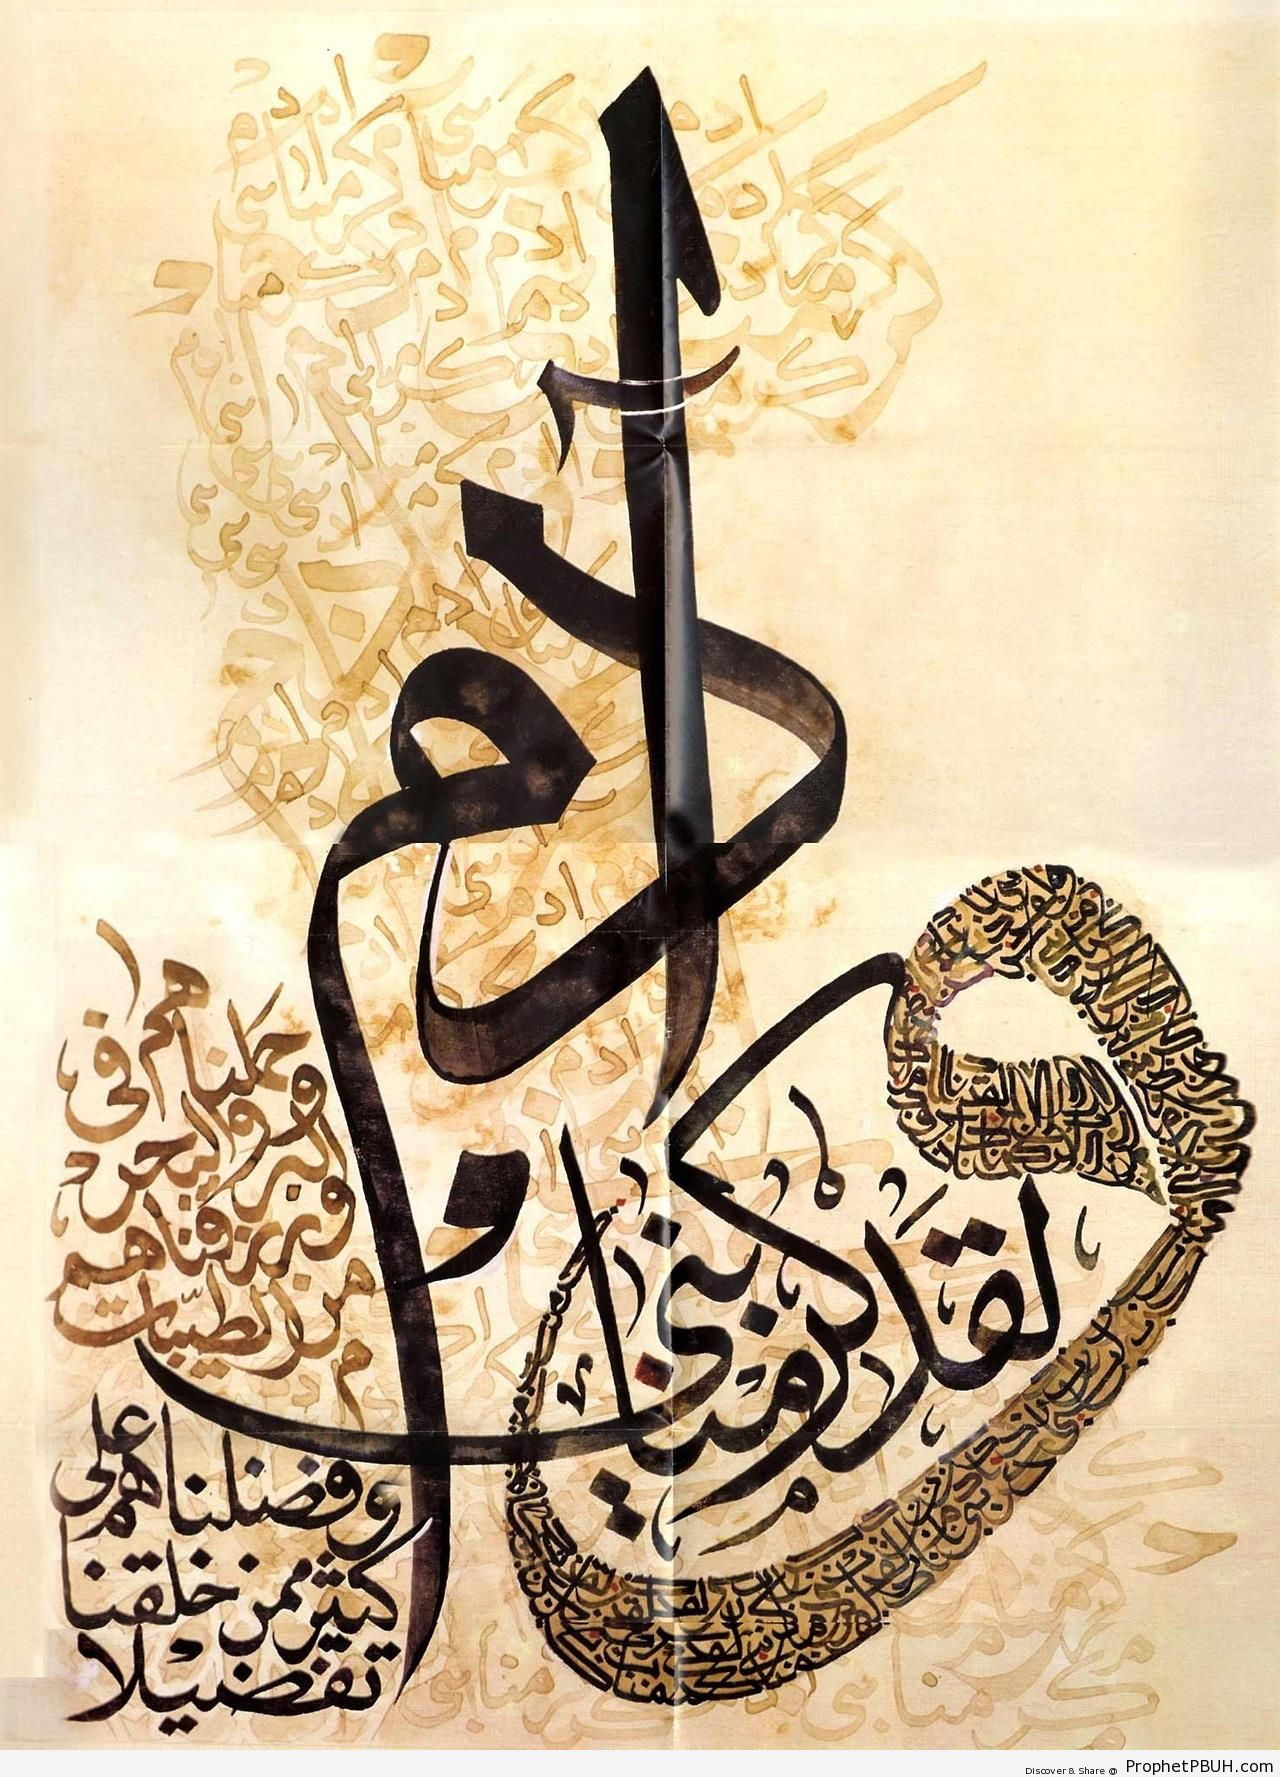 Islamic Calligraphy- The Quran on Humanity - Home » Islamic Calligraphy and Typography » Islamic Calligraphy- The Quran on Humanity